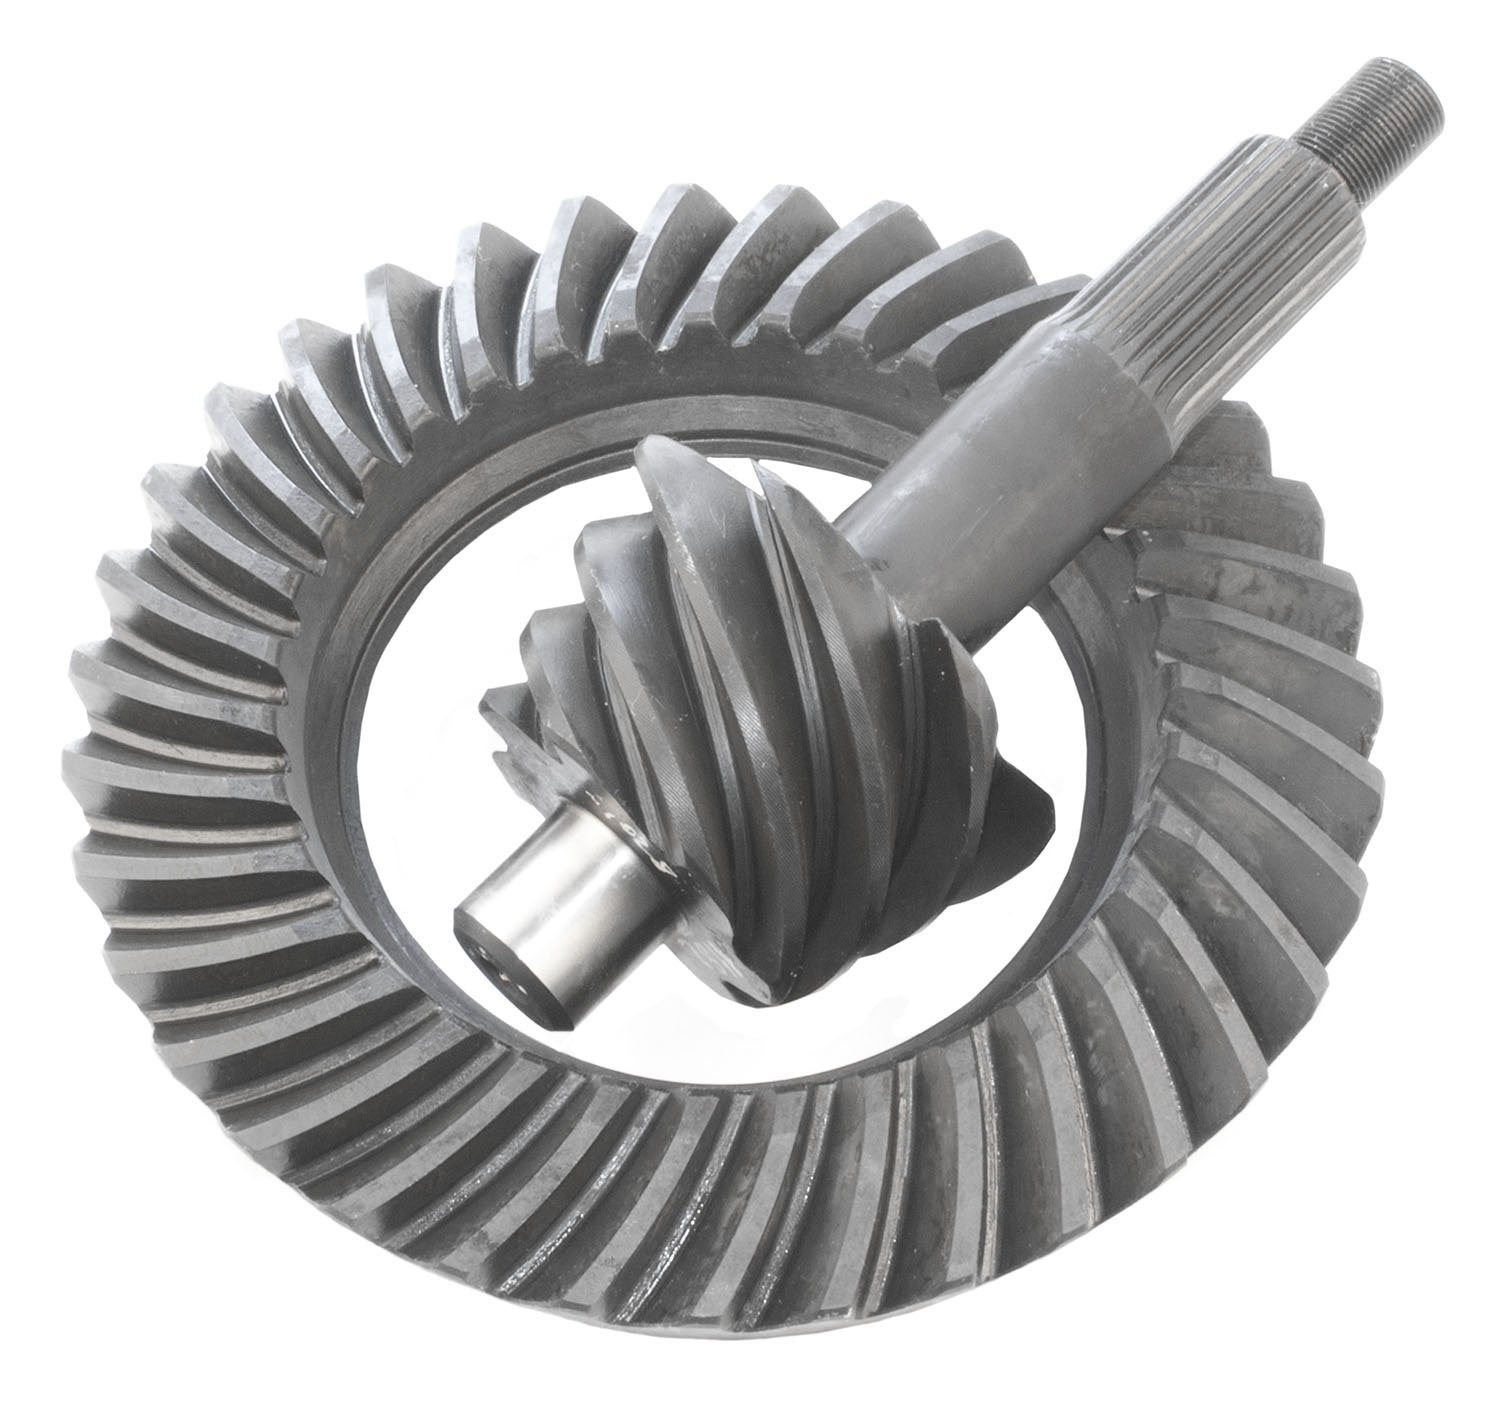 Richmond Gear 69-0276-1 Ring and Pinion Ford 9 6.33 Ring Ratio 1 Pack